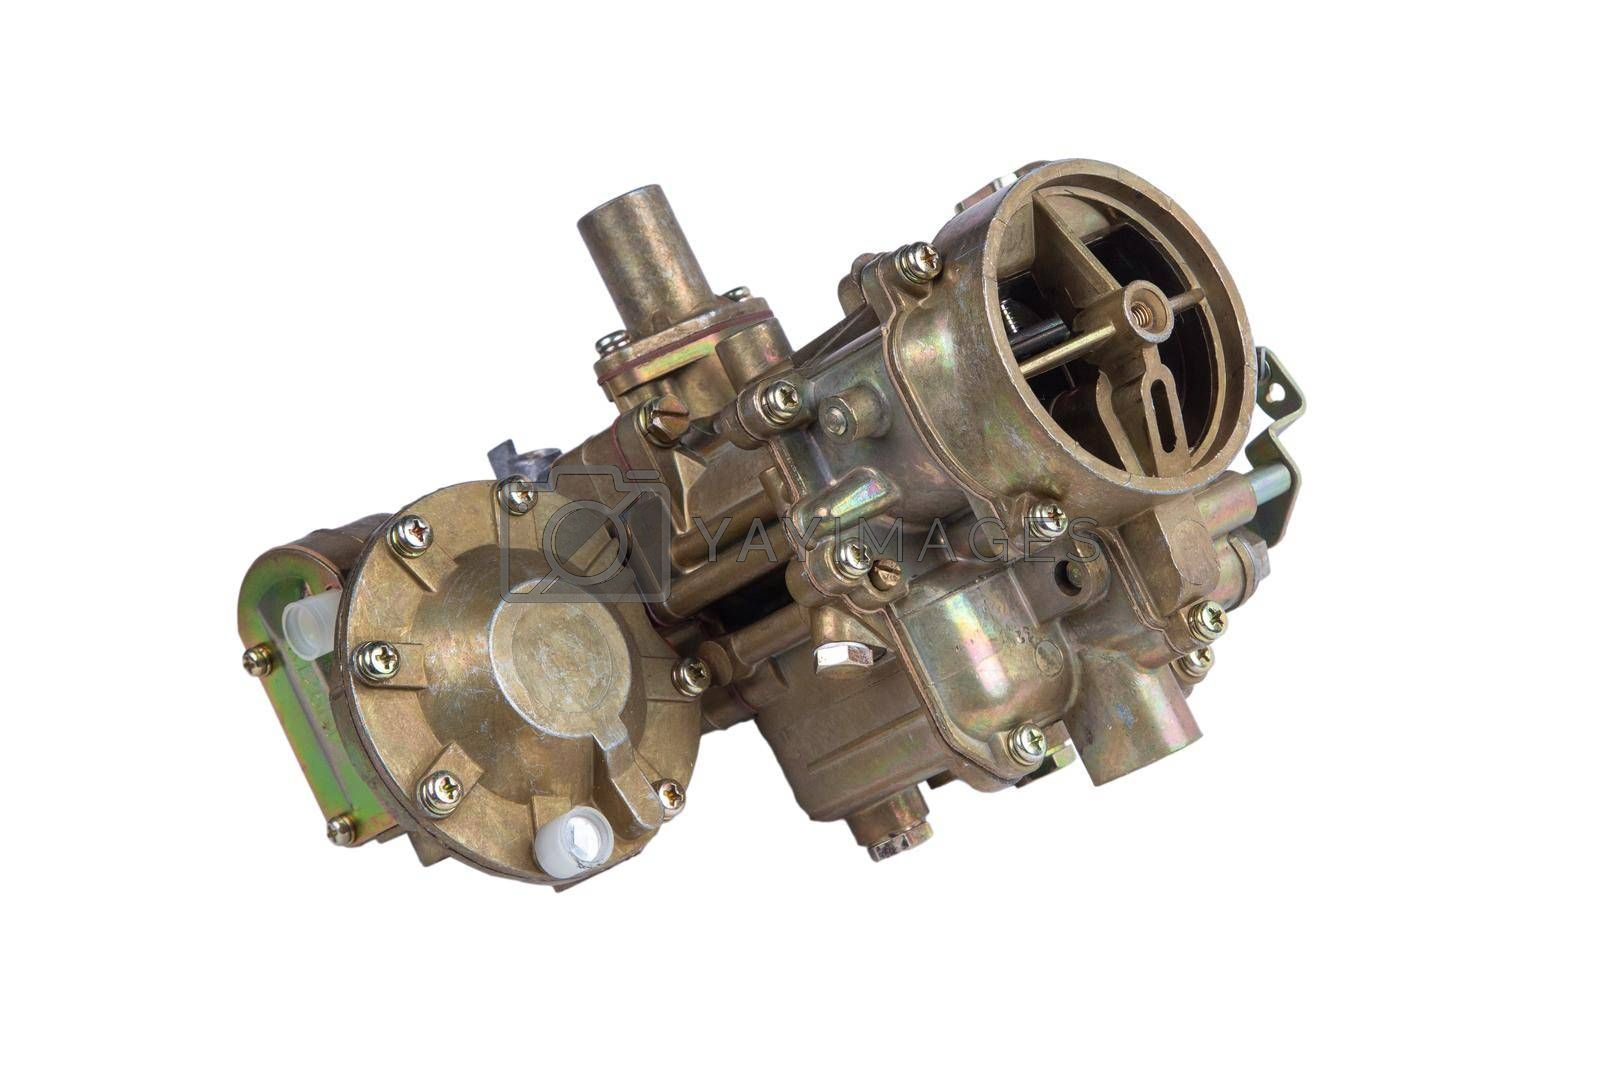 new carburetor of the internal combustion engine of the car isolated on white background by forester